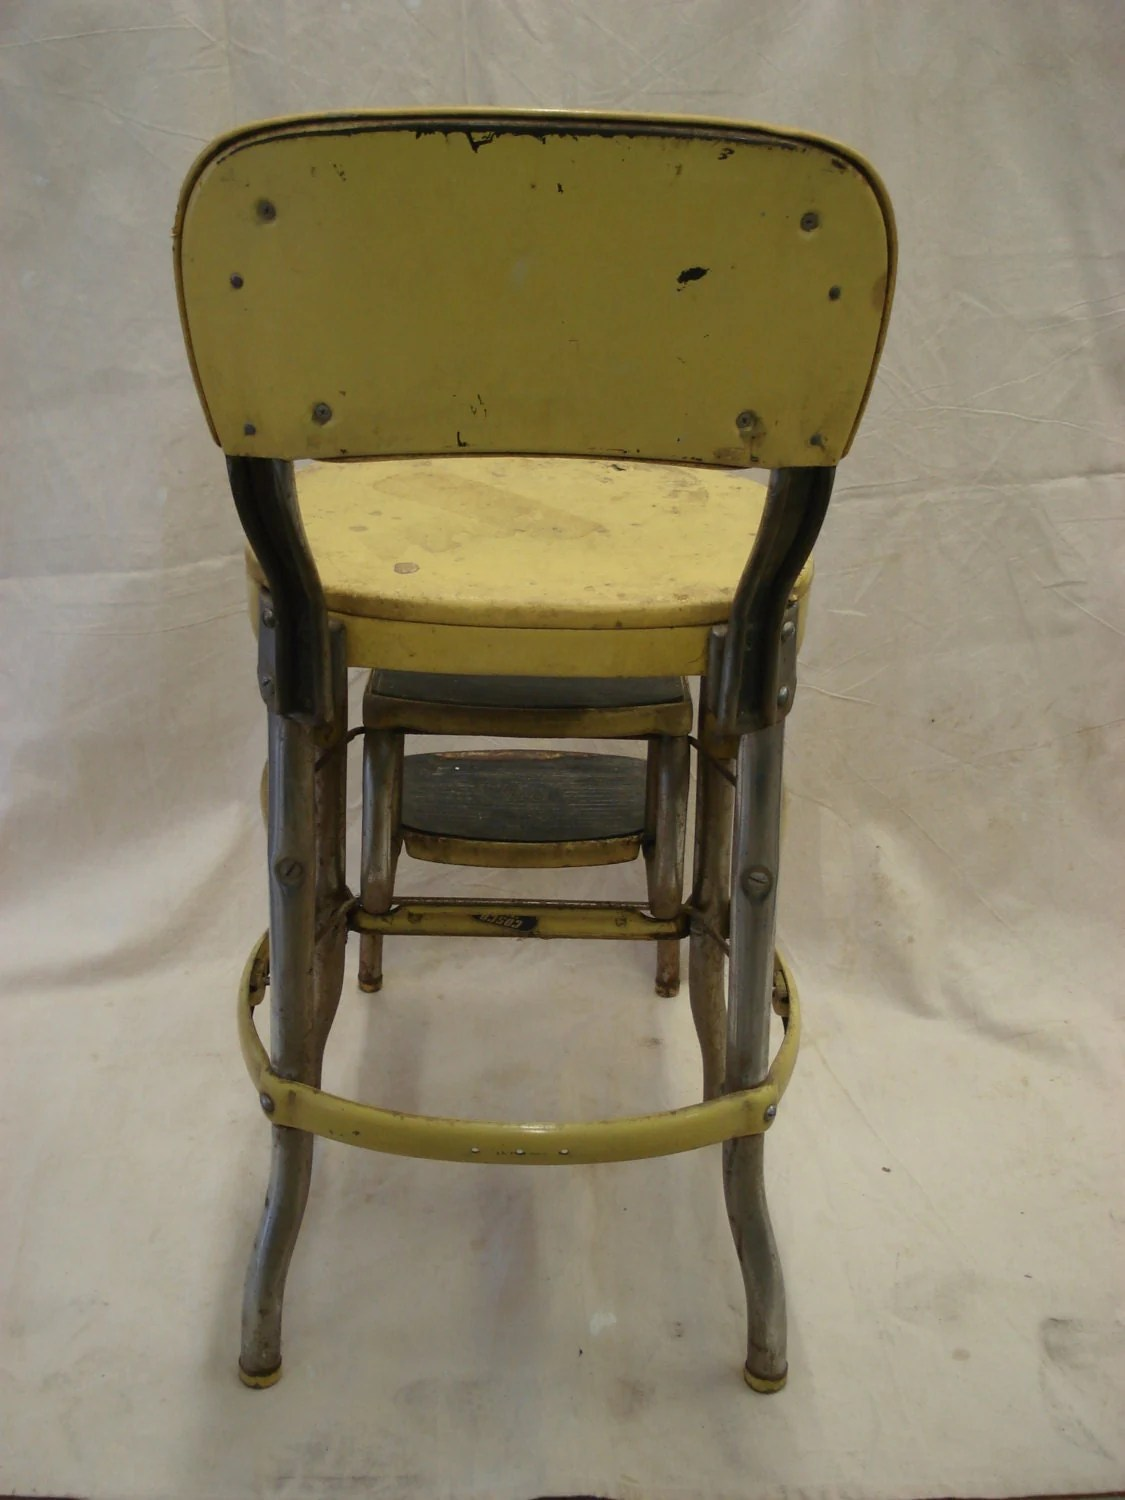 folding kitchen step stool home depot sinks stainless steel vintage metal yellow costco chair fold out